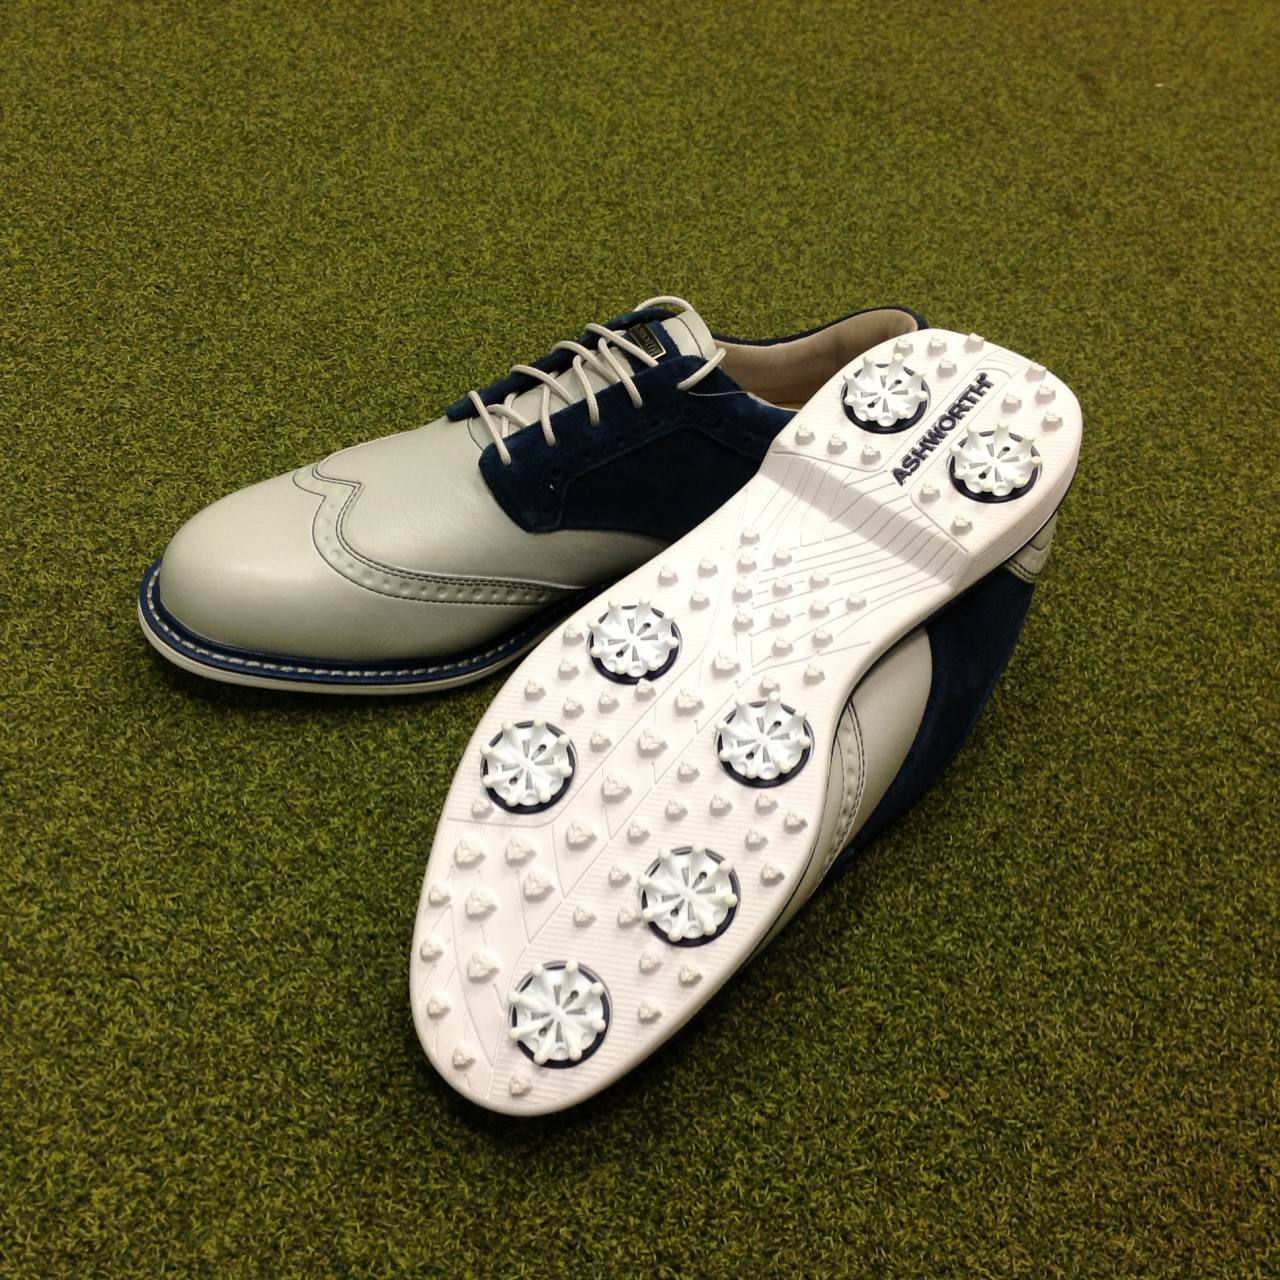 Callaway Chev Lite Golf Shoes Review